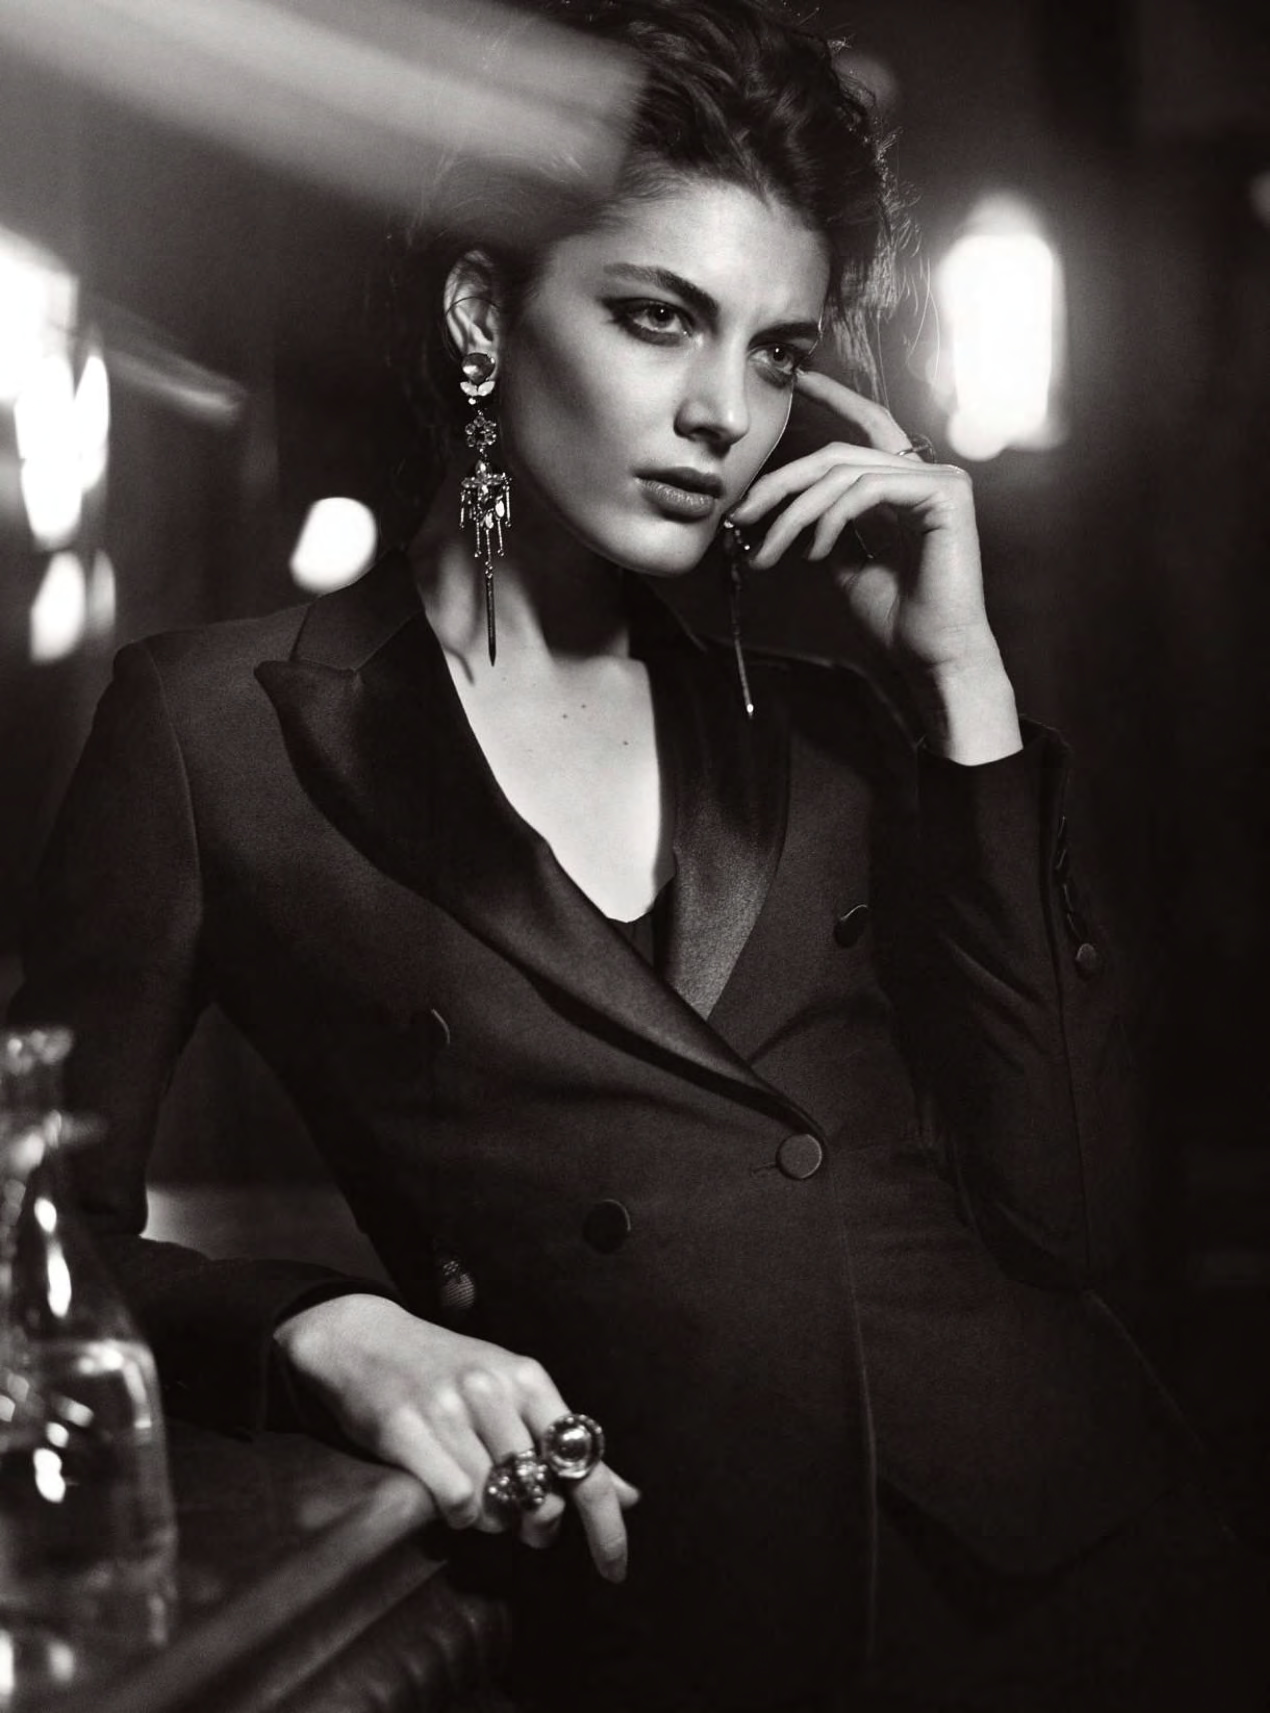 katryn-kruger-by-vincent-peters-for-harper_s-bazaar-uk-april-2015-Vincent-Peters-exposition-hune-paris-folkr-02